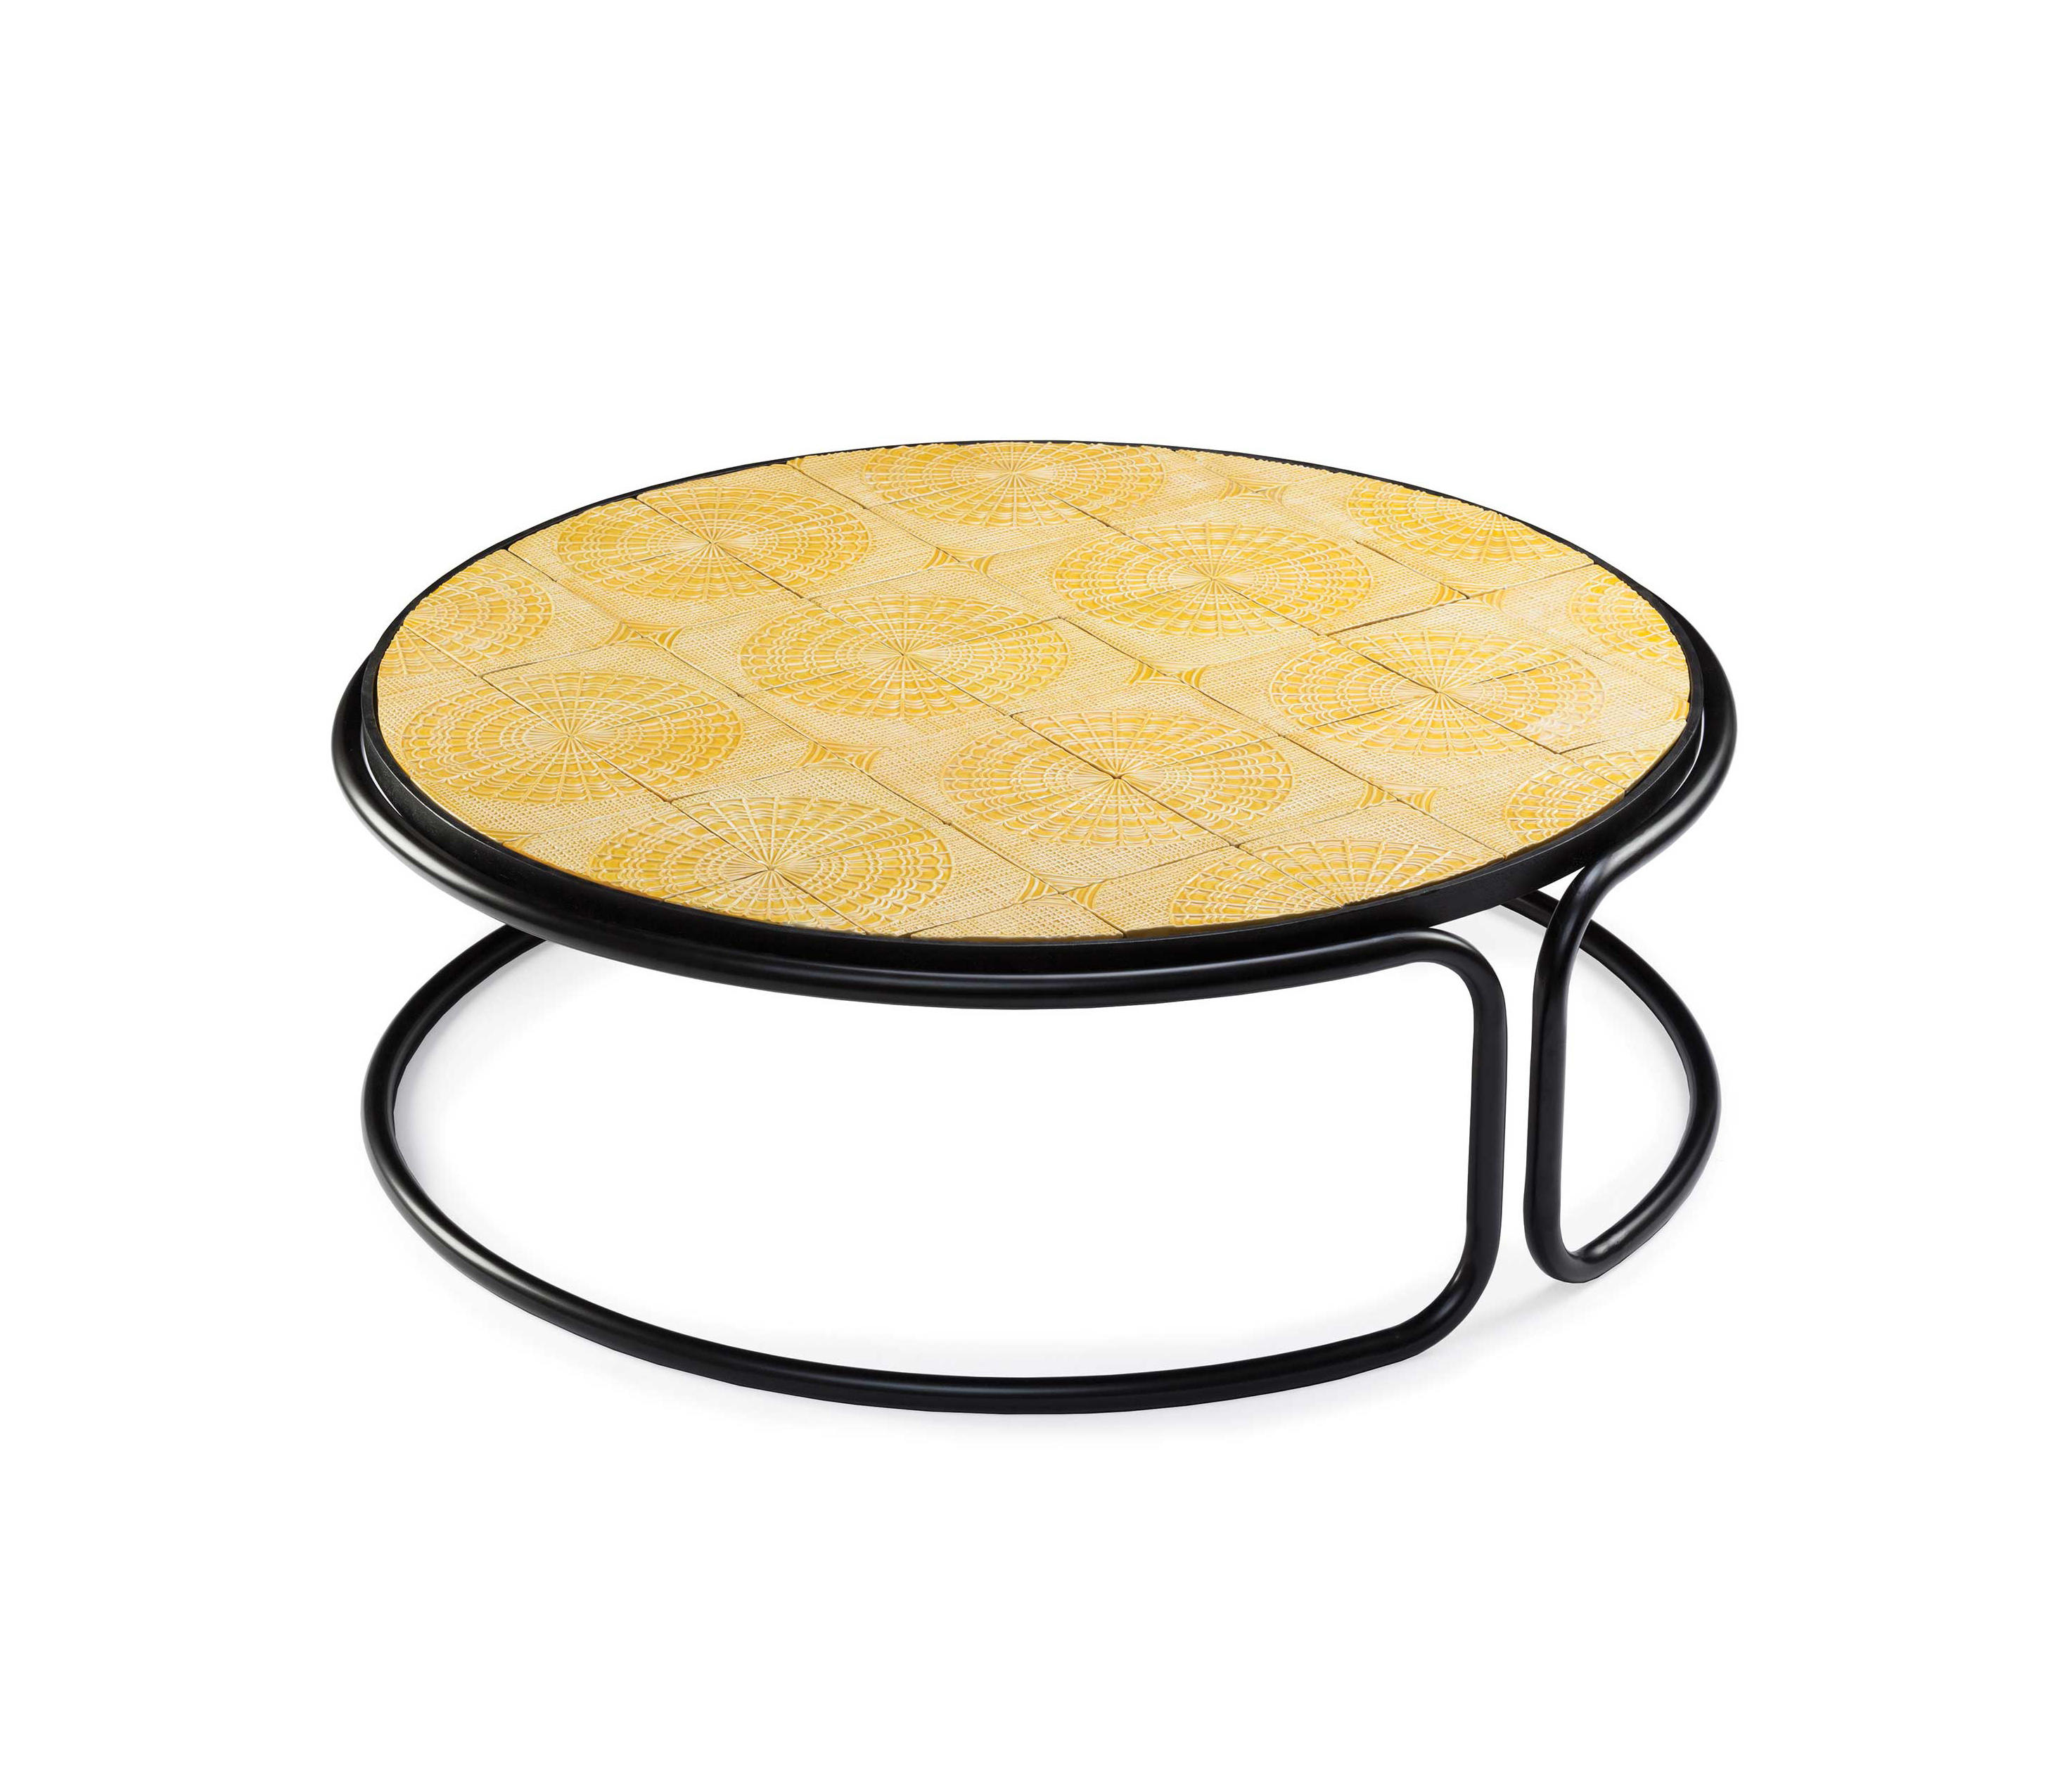 COFFEE TABLES WITH TOP IN CERAMIC High quality designer COFFEE